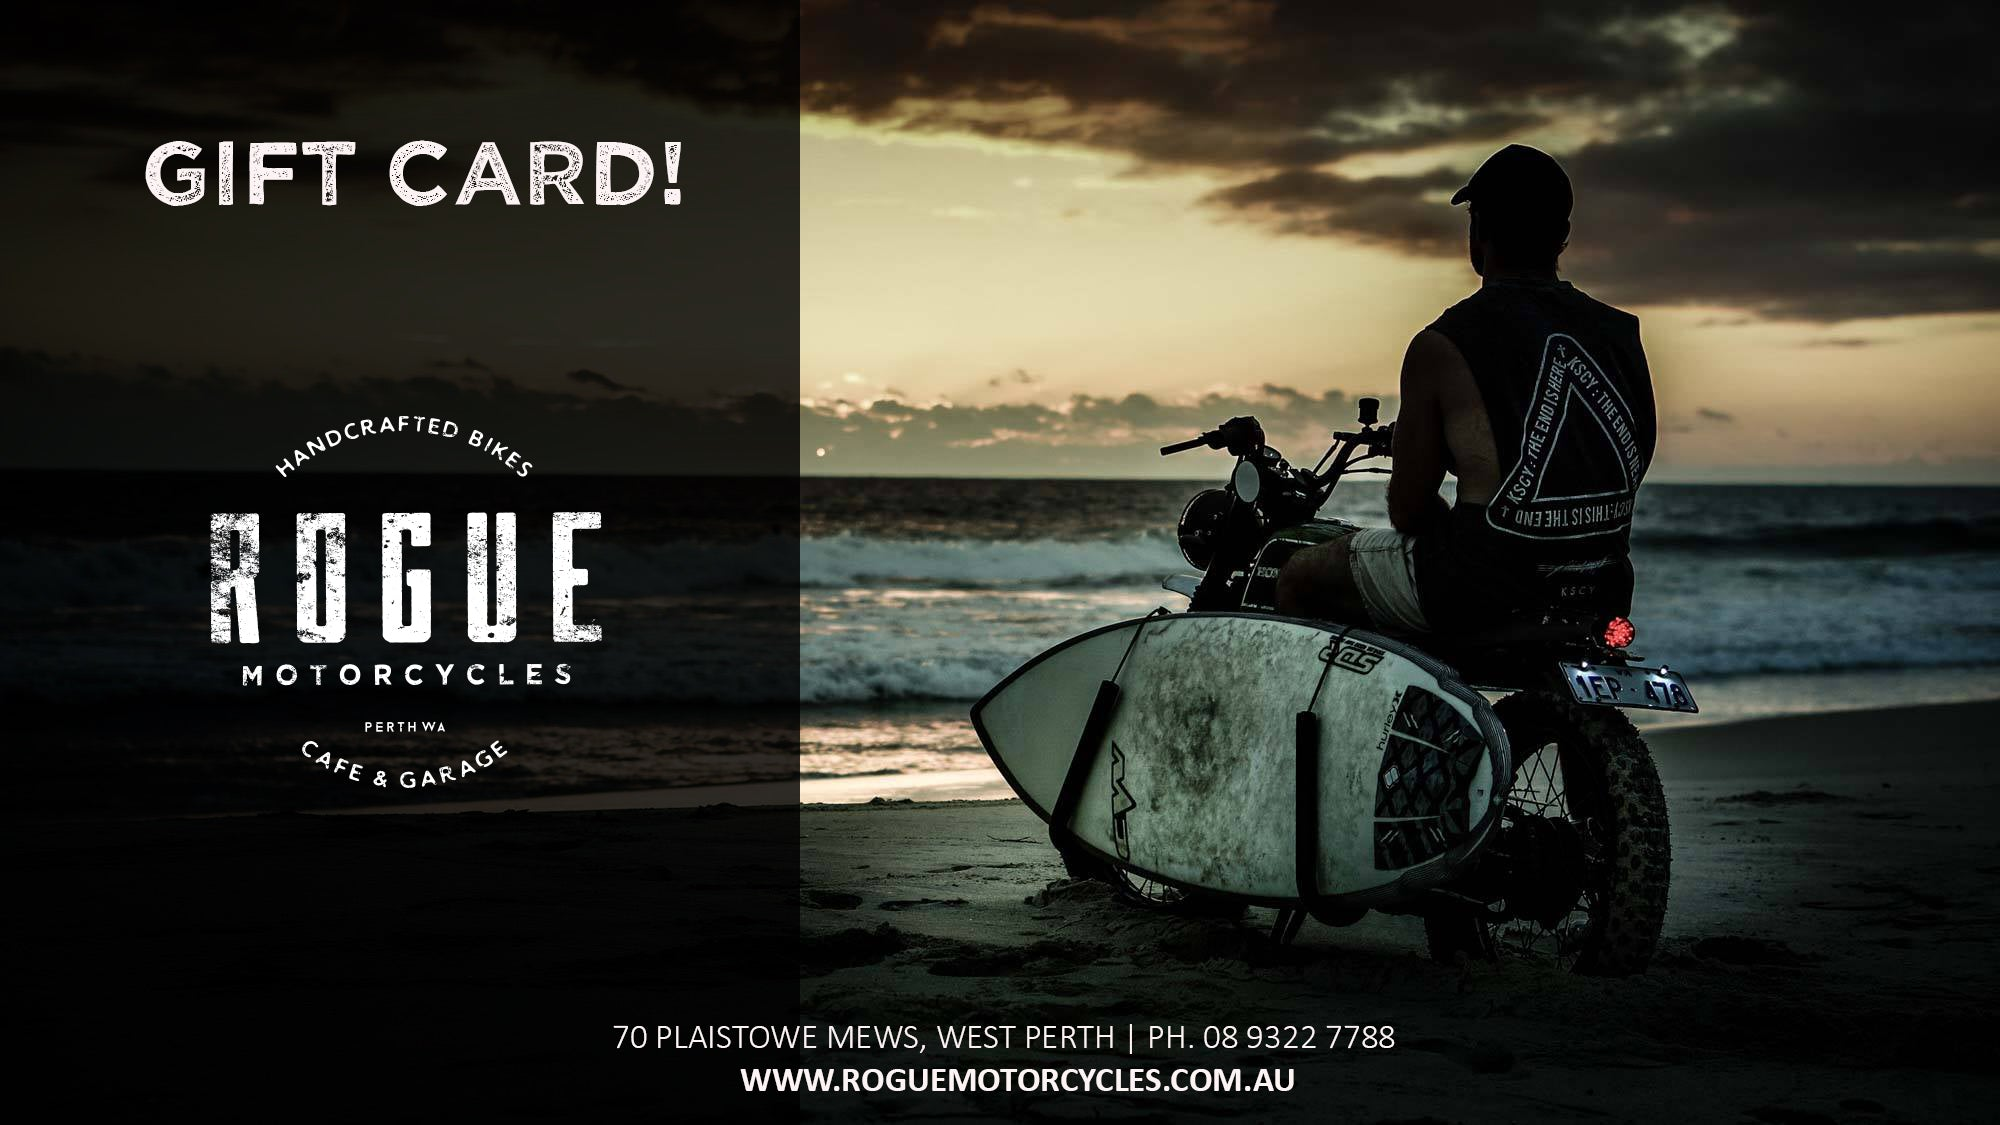 Rogue Motorcycles Gift Voucher